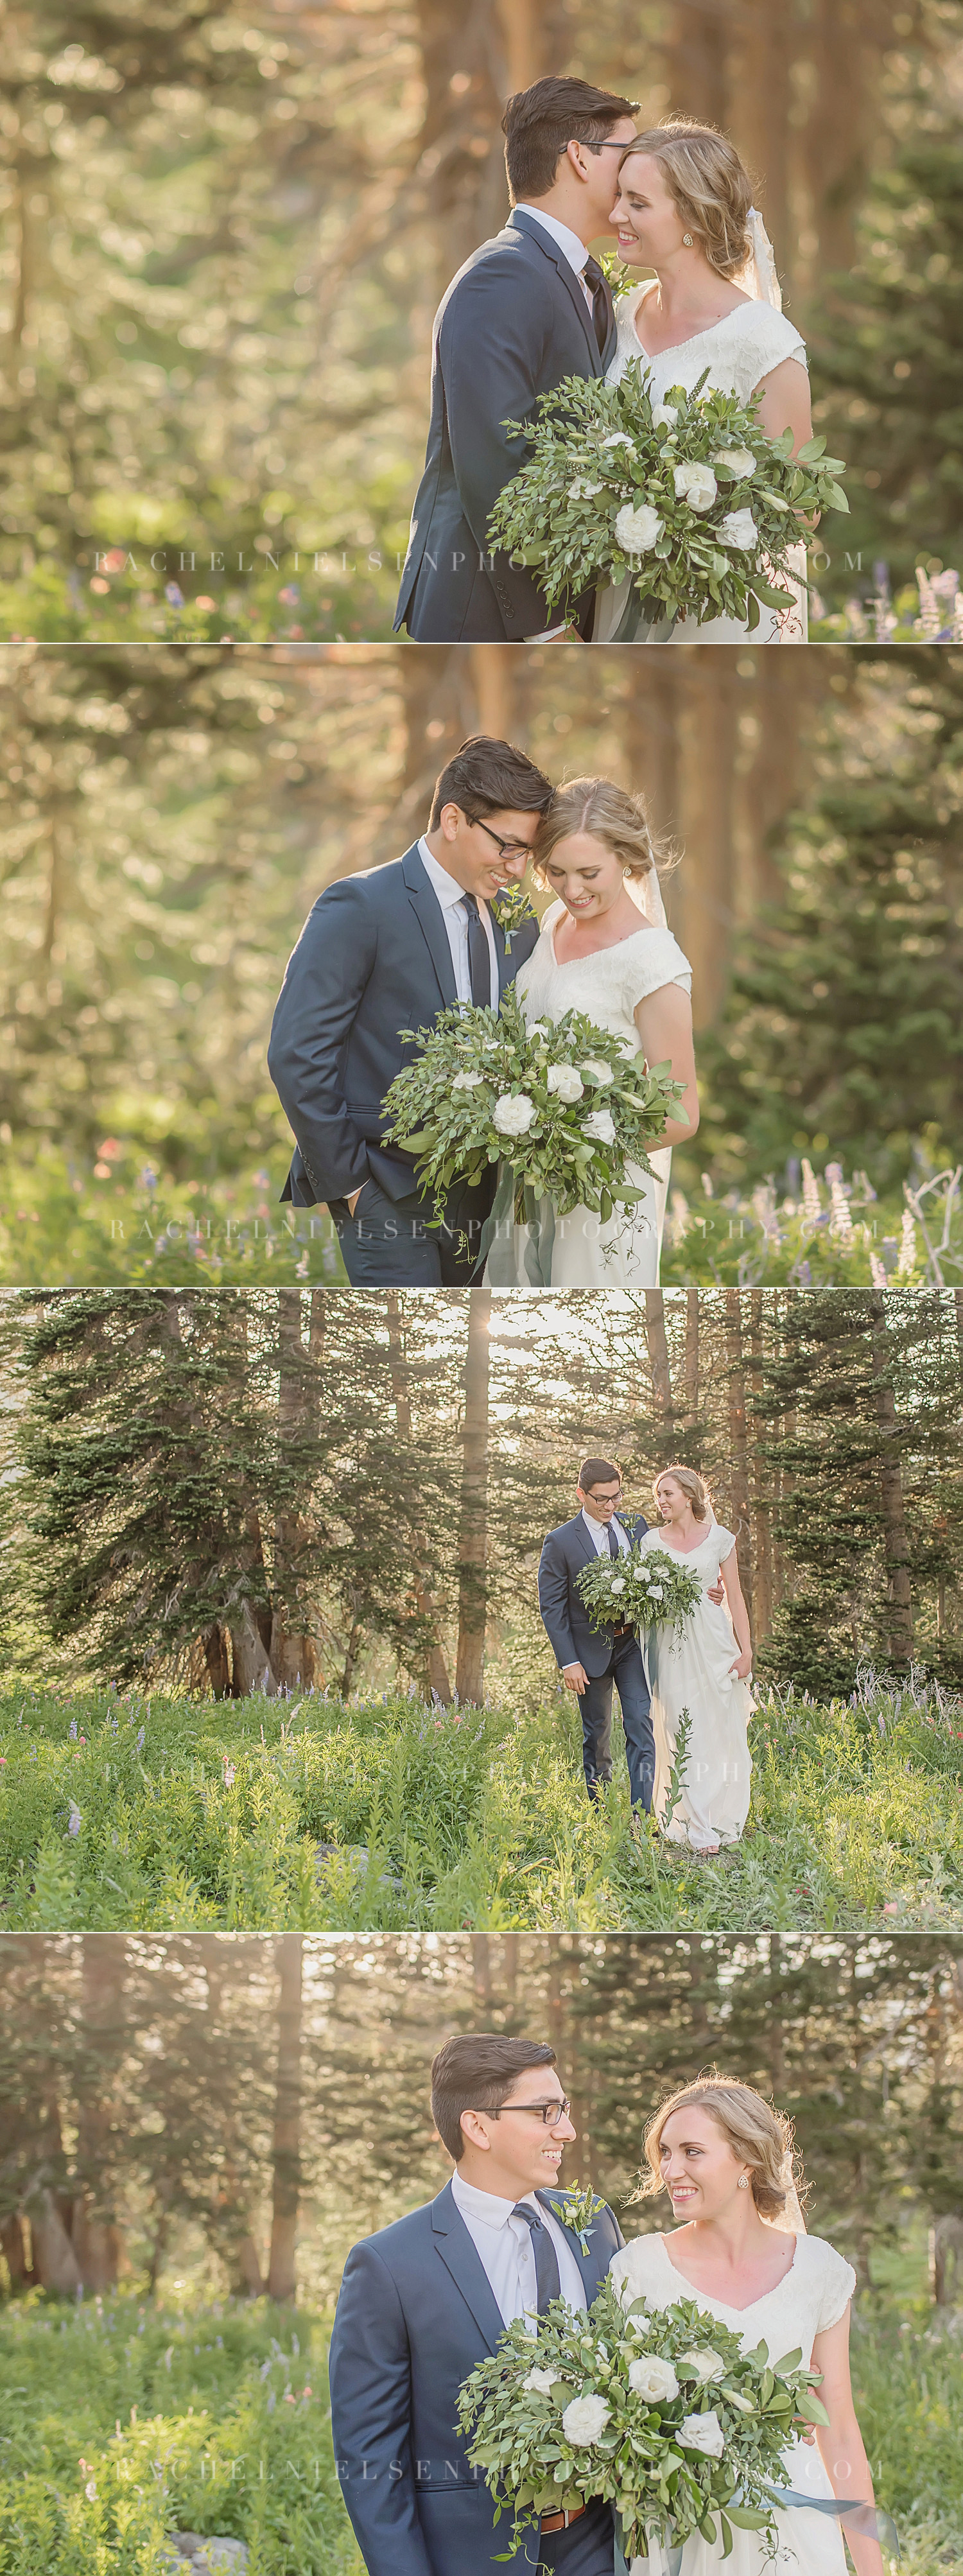 Albion-basin-bride-and-groom-3